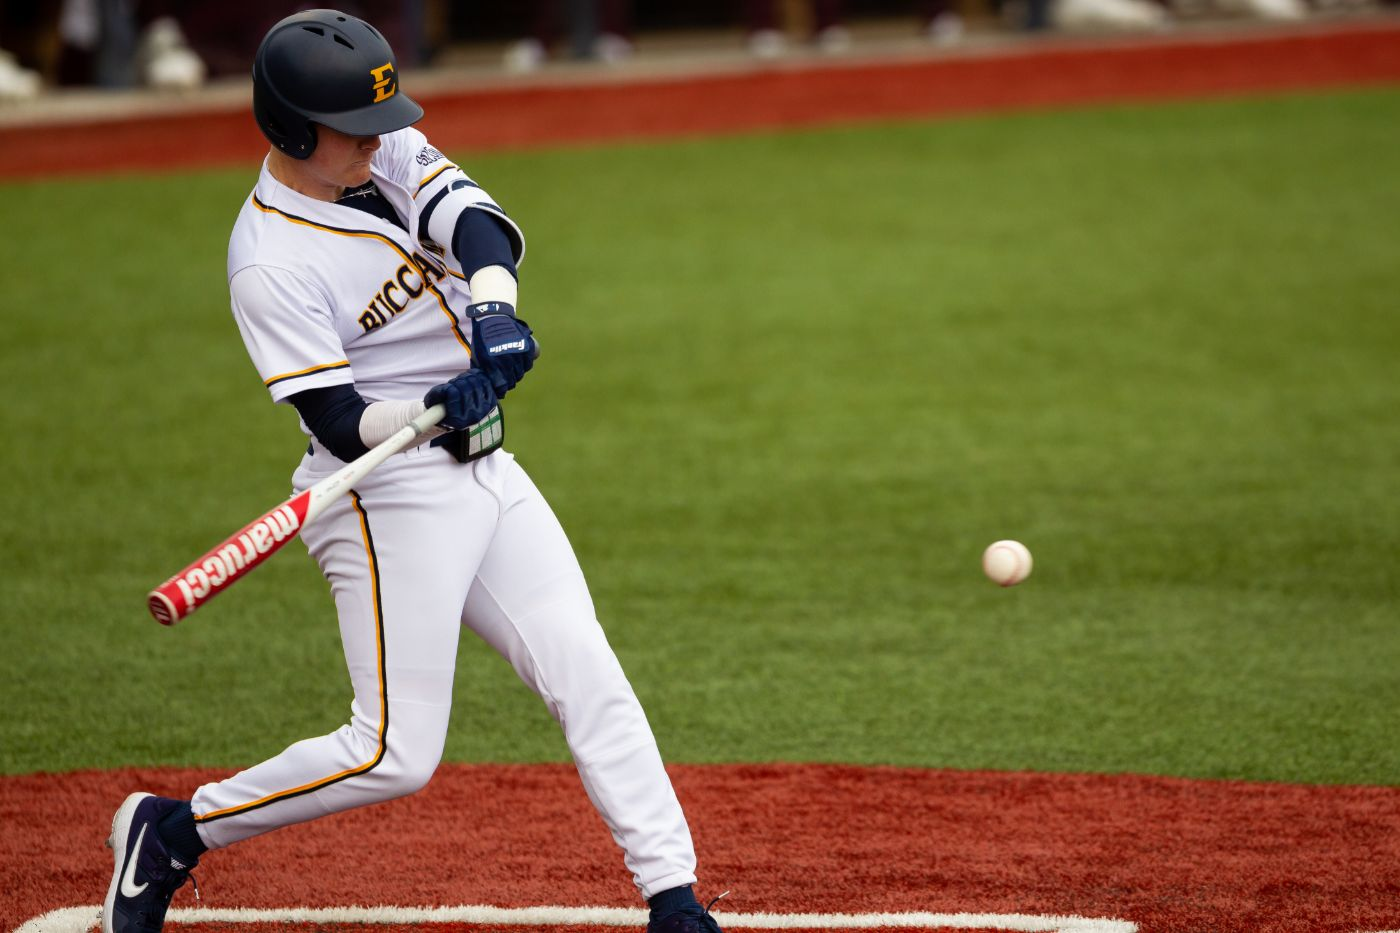 Bucs bring offense in 14-3 win over Iona